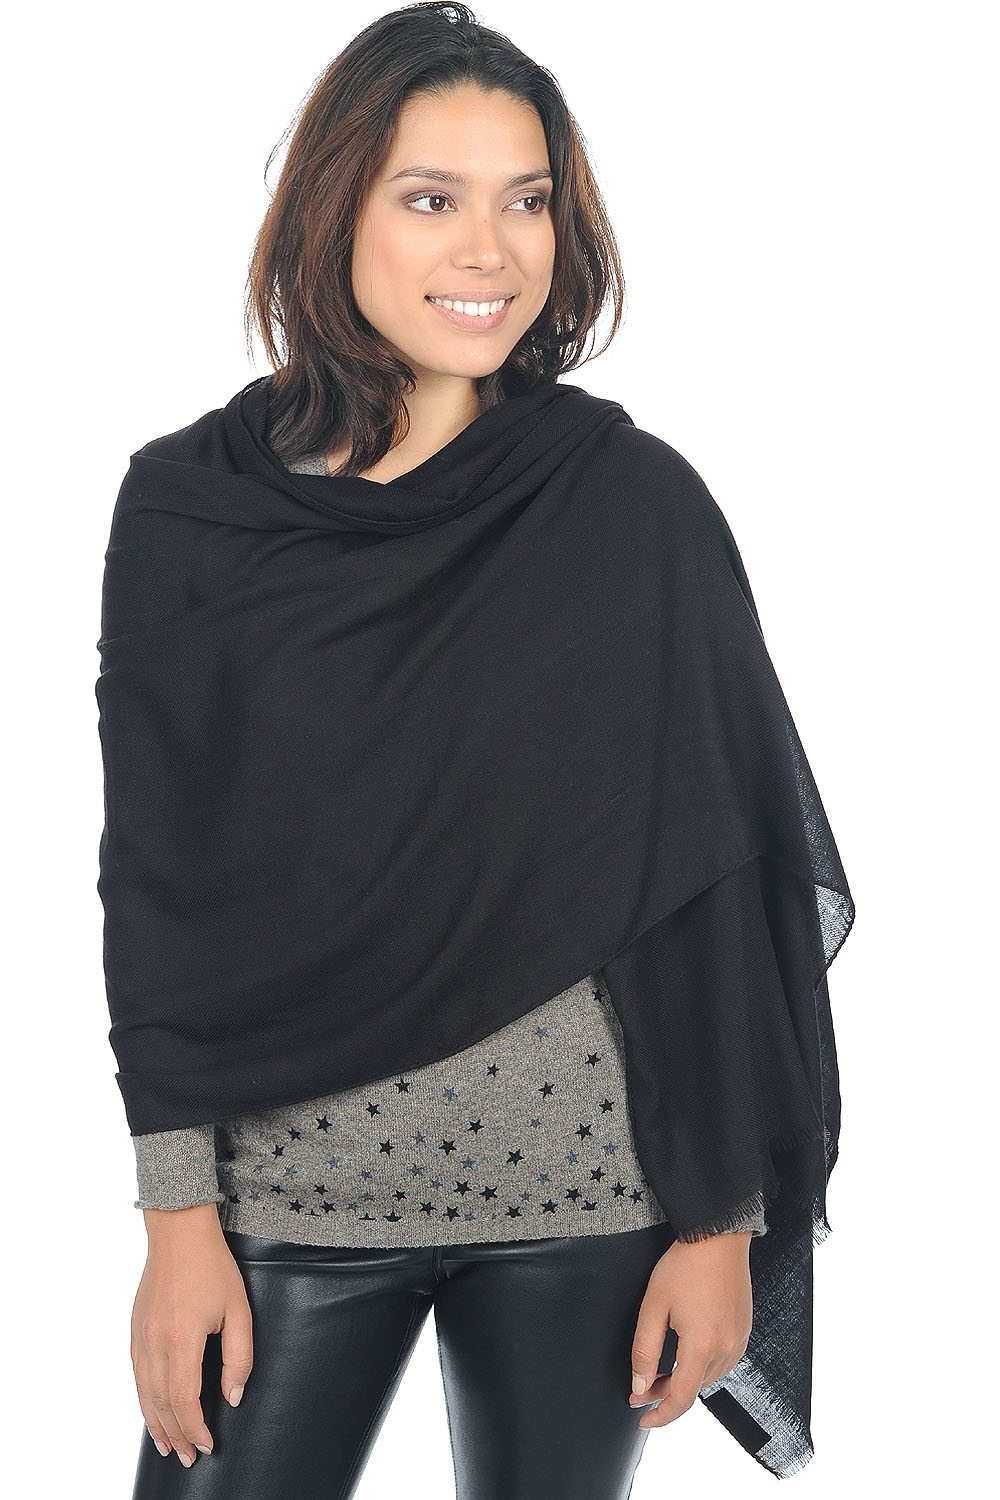 vicuna accessories shawls vicunadiams black 200x70cm